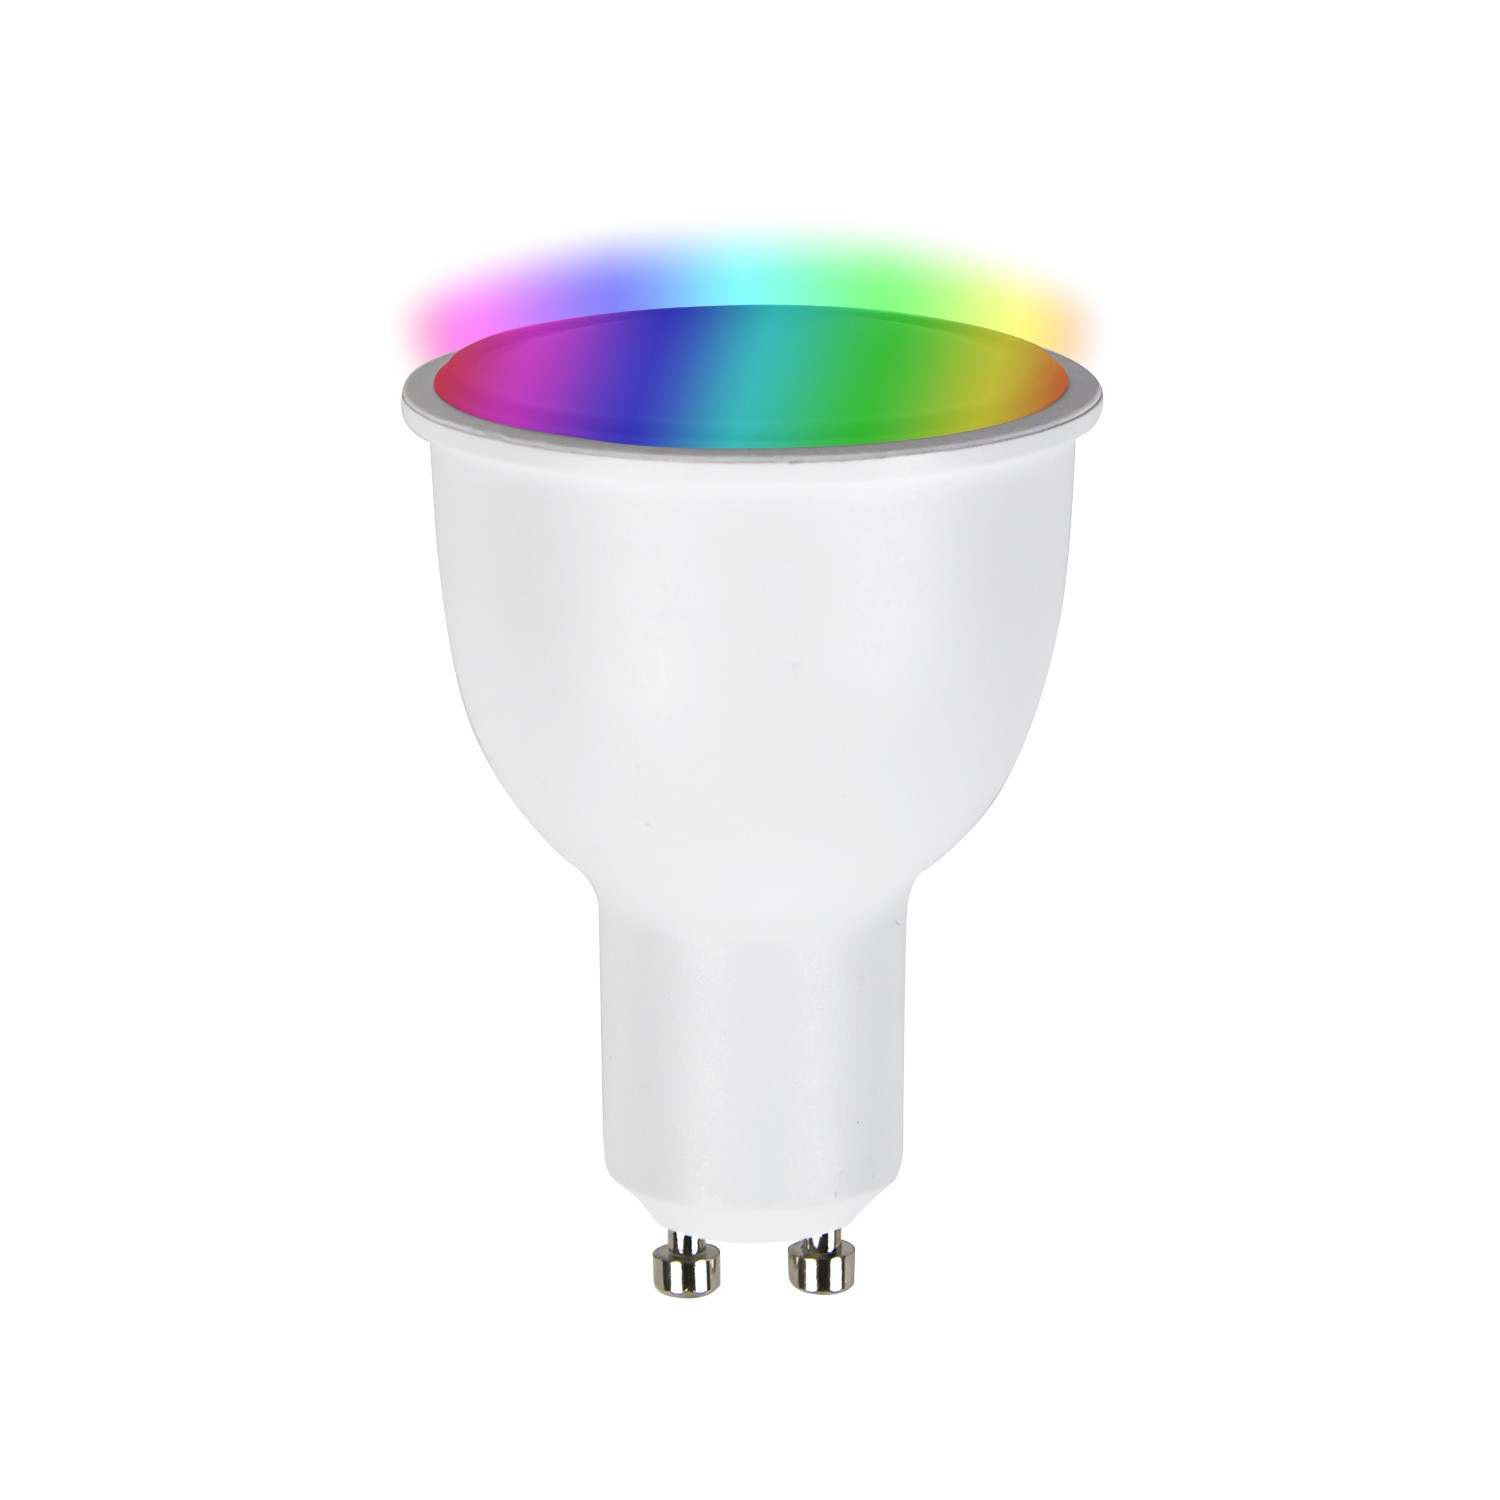 Hue Fitting Electriq Smart Dimmable Colour Wifi Bulb With Gu10 Spotlight Fitting Alexa Google Home Compatible